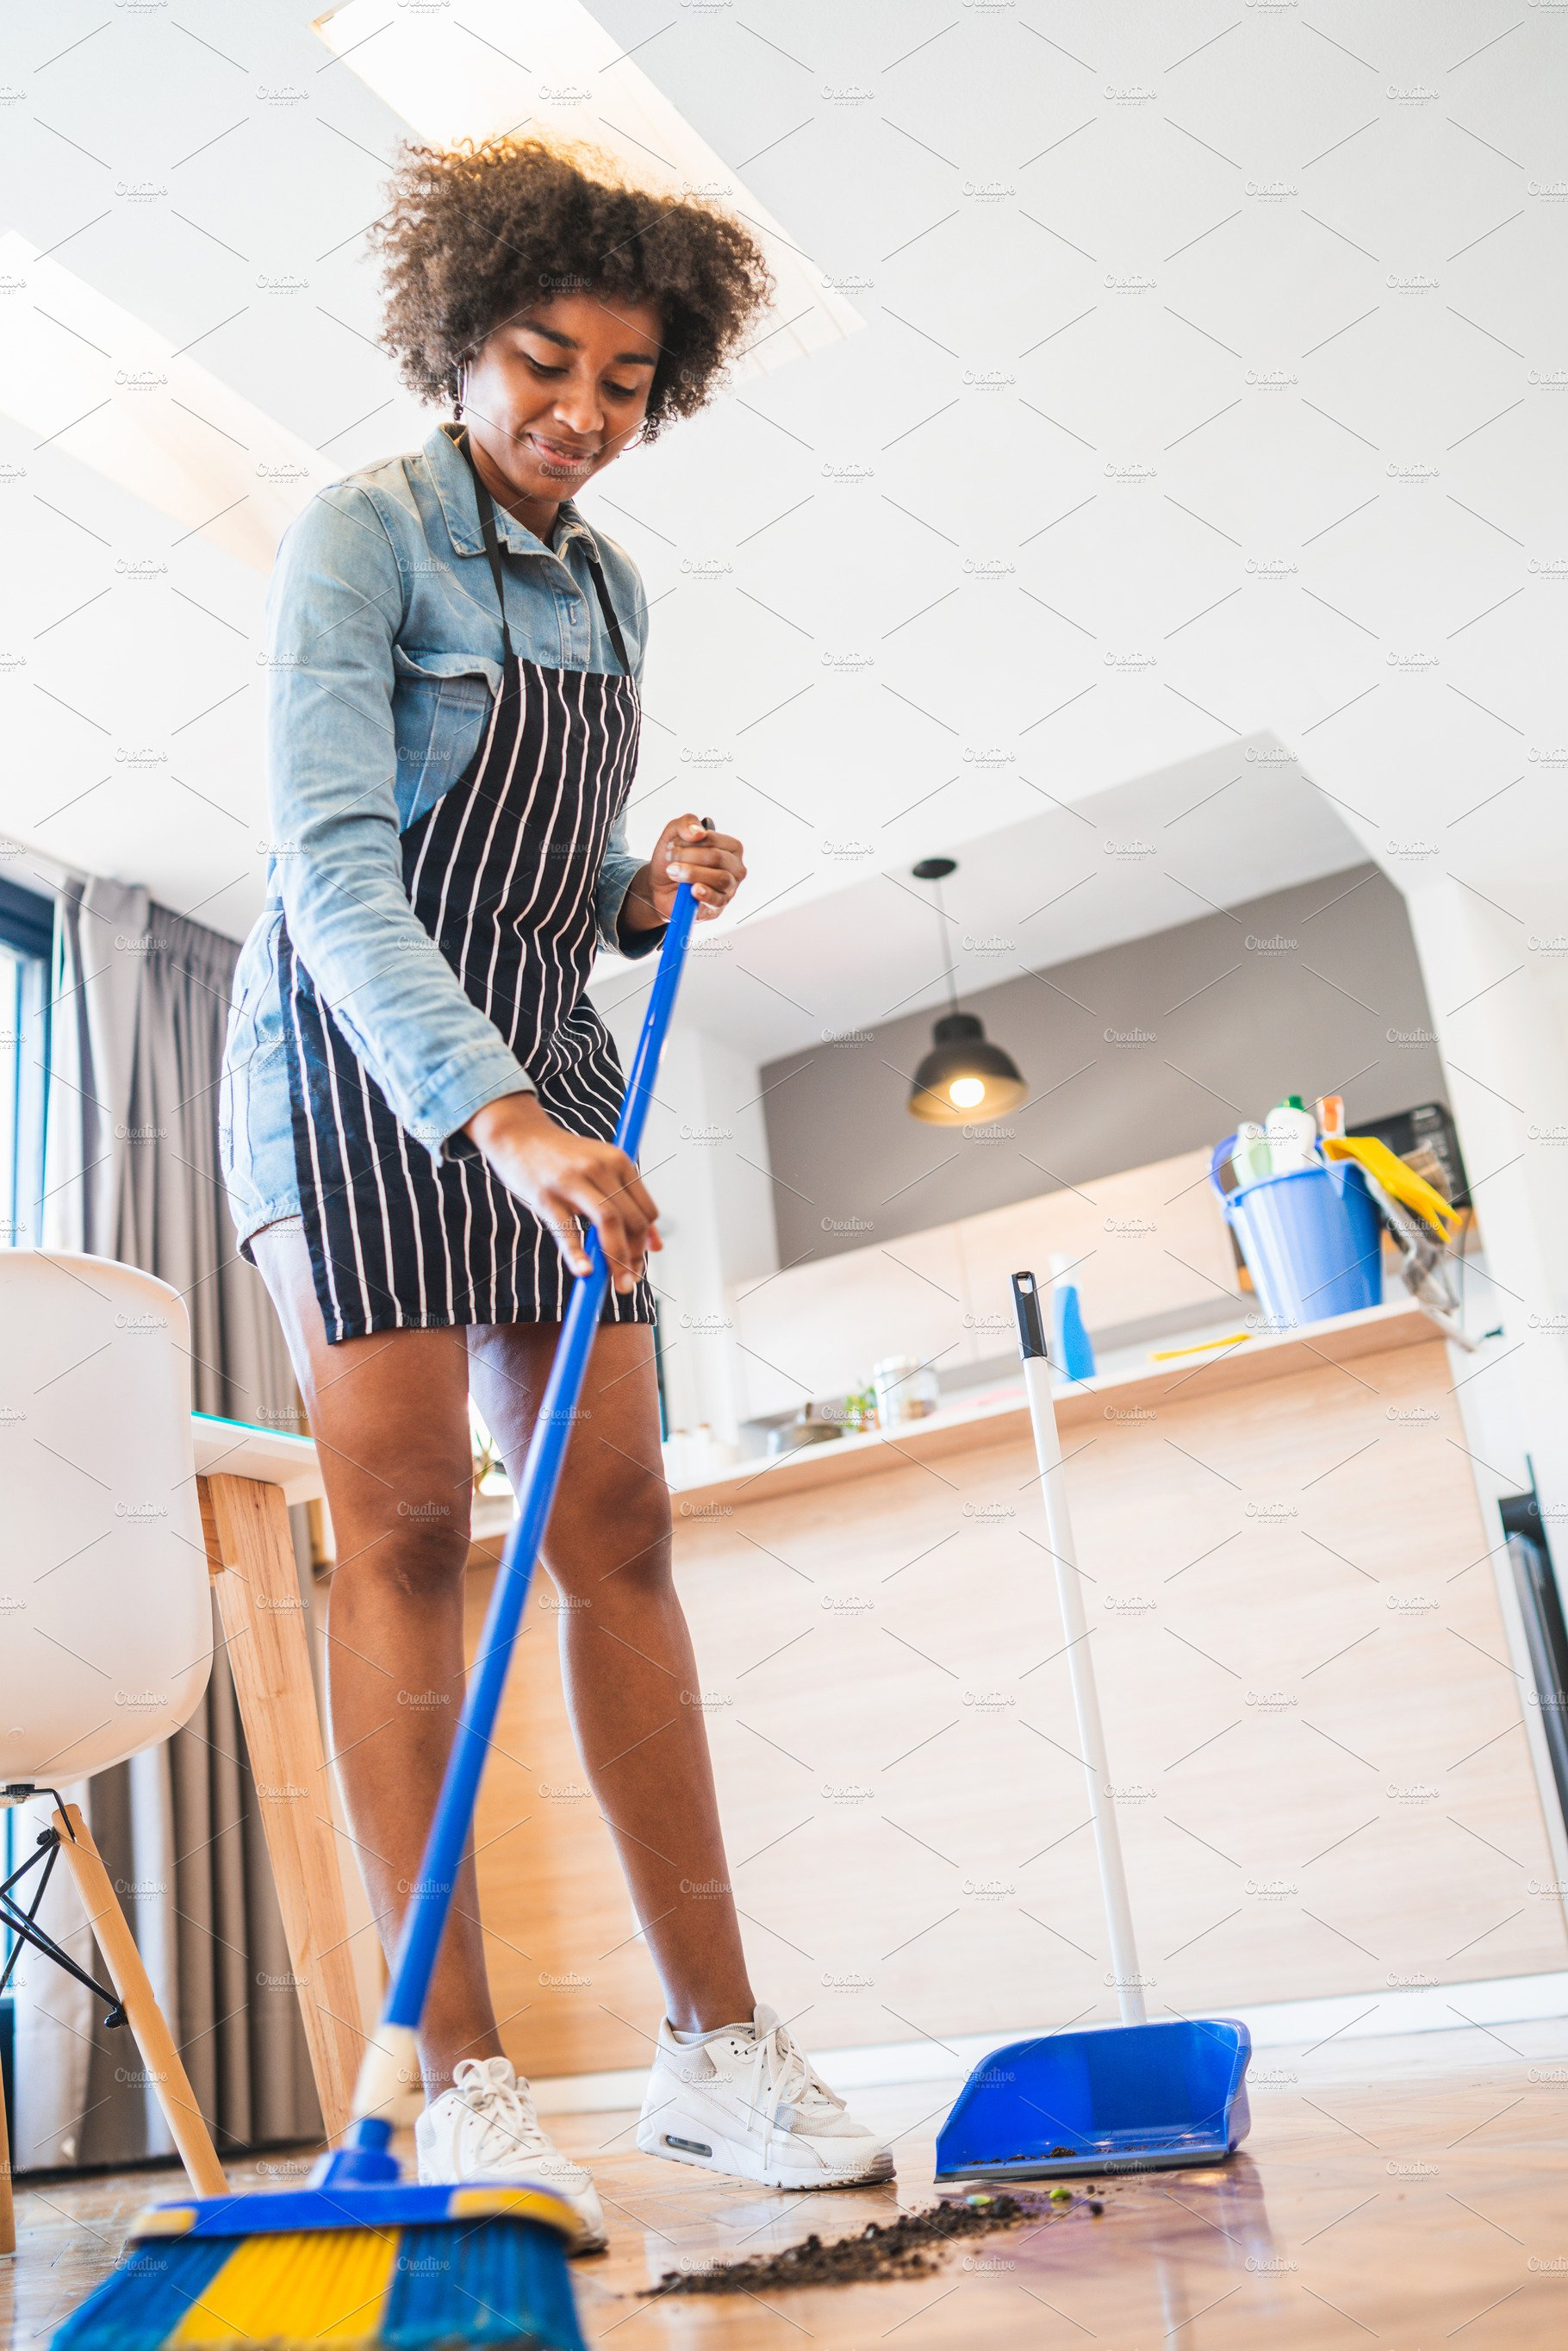 afro woman sweeping floor with broom high quality stock photos creative market creative market